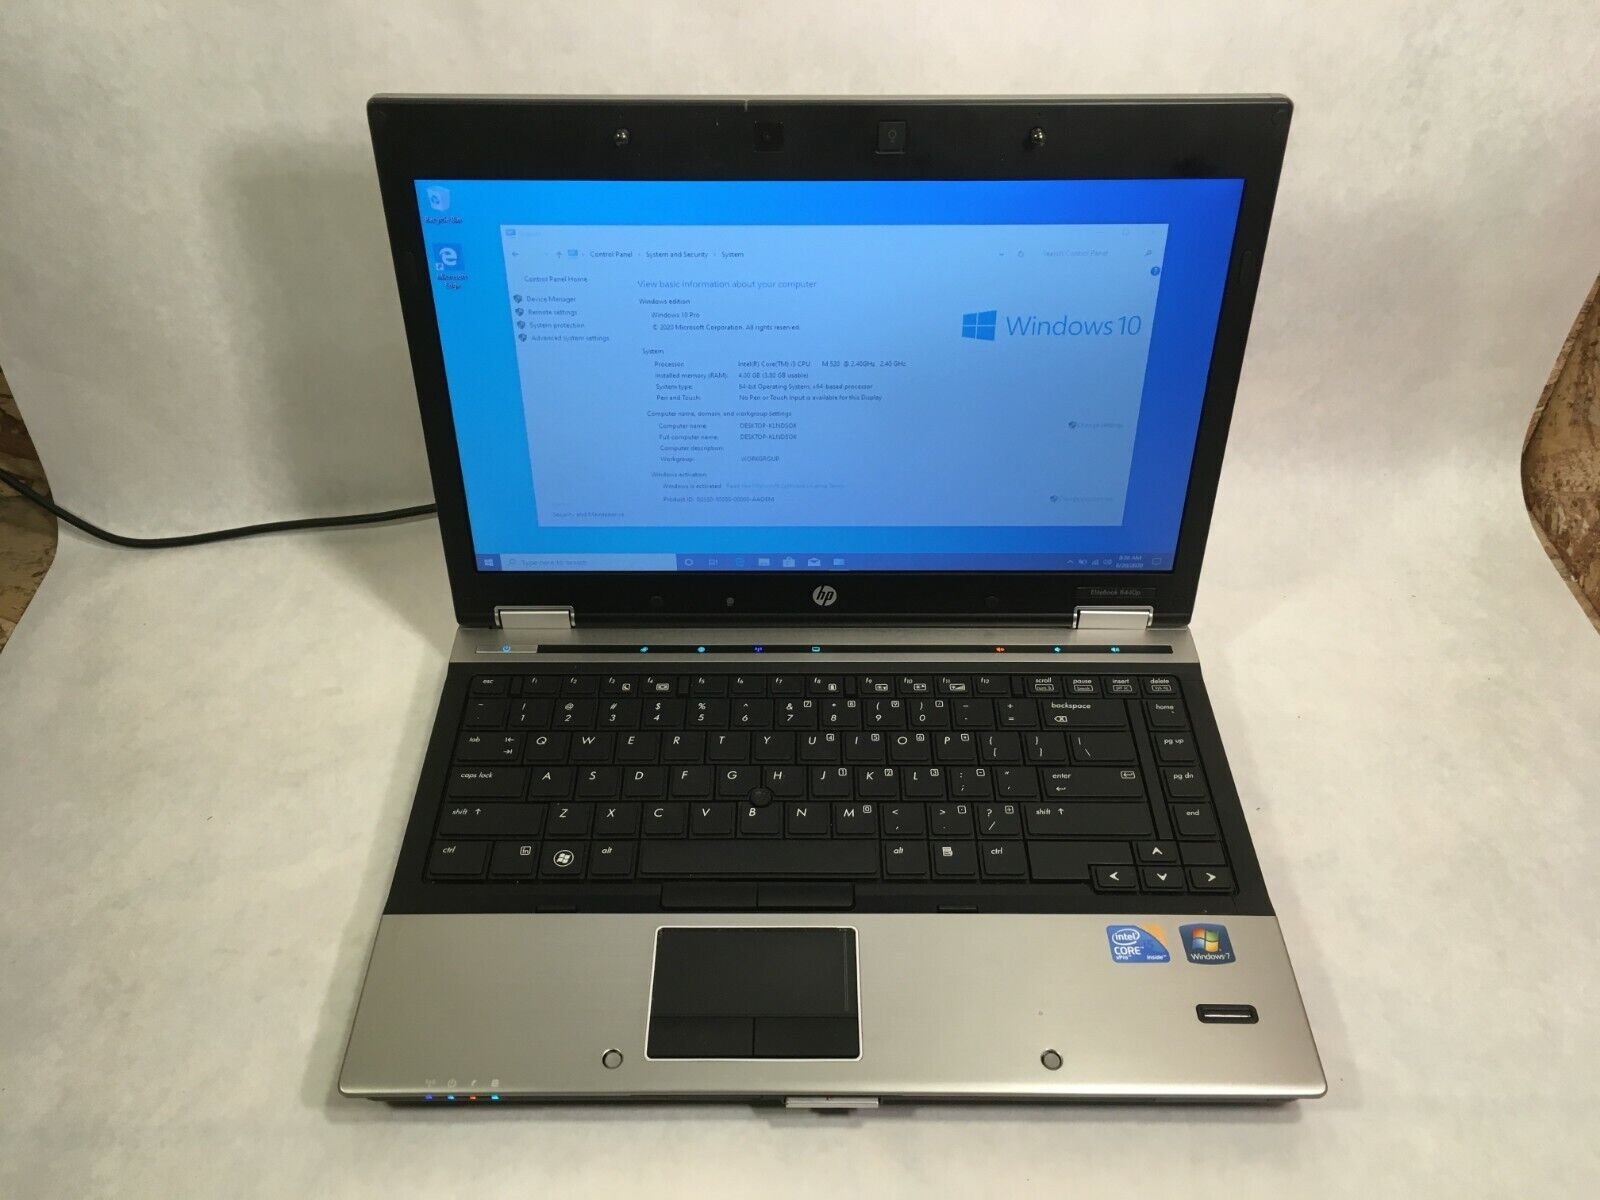 "Laptop Windows - HP EliteBook 8440p 14"" Laptop Intel i5 2.4GHz 4GB 250GB Windows 10"